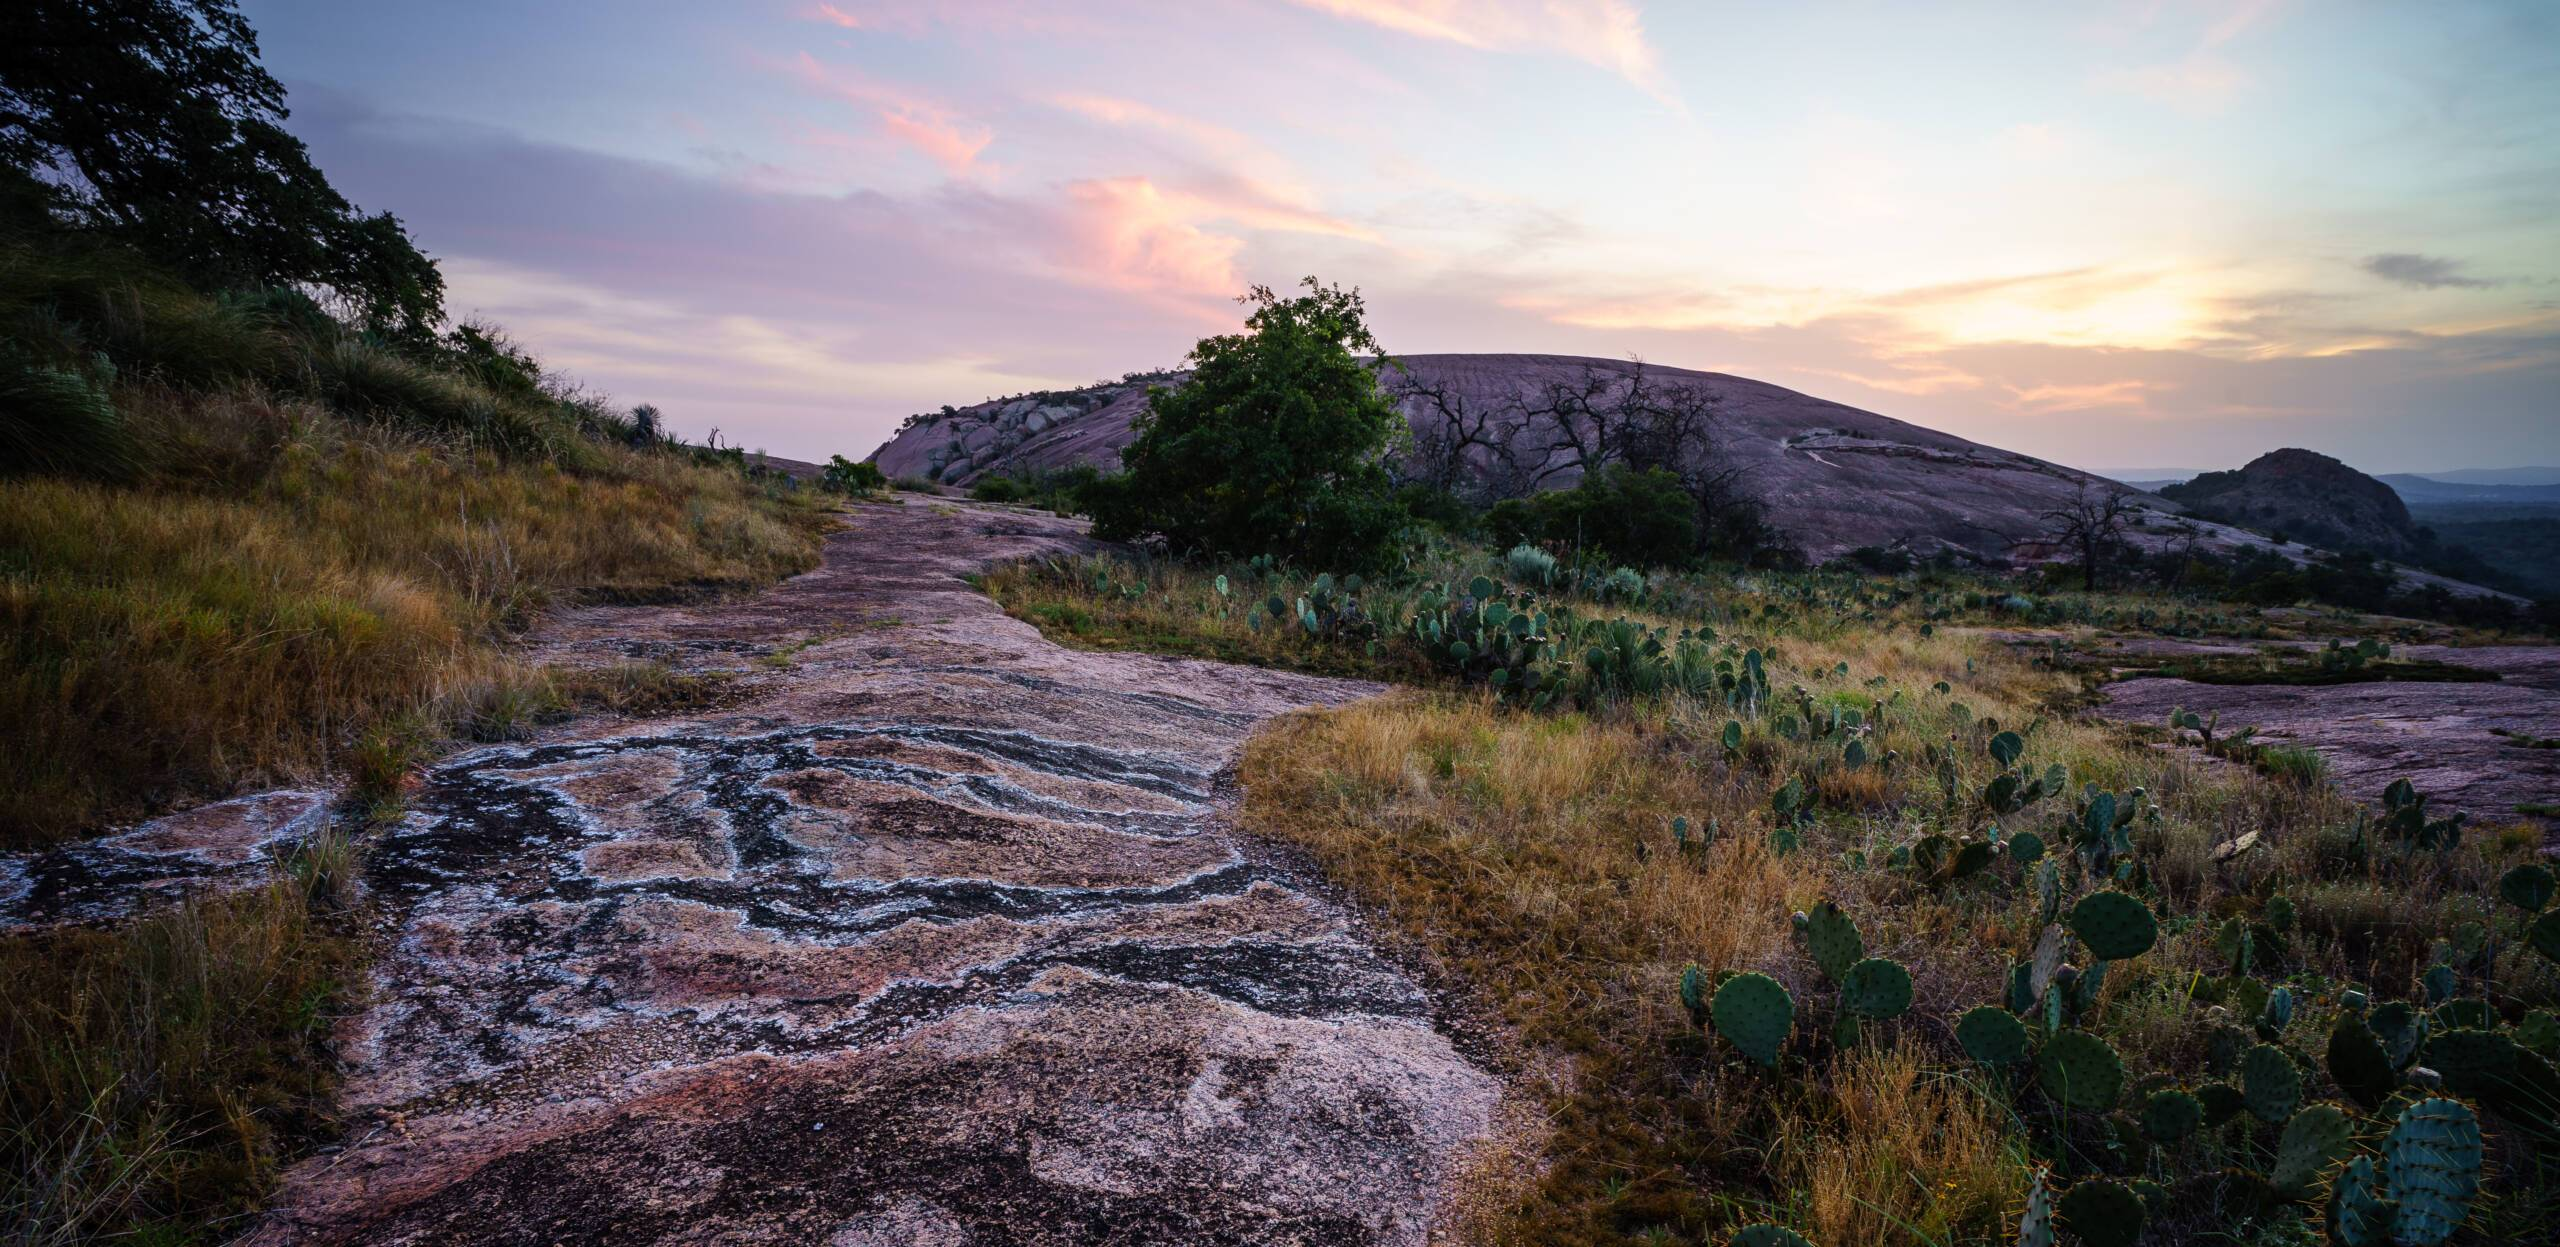 Enchanted Rock at sunrise is, well, enchanting. Photo by Daniel Mullins/Shutterstock.